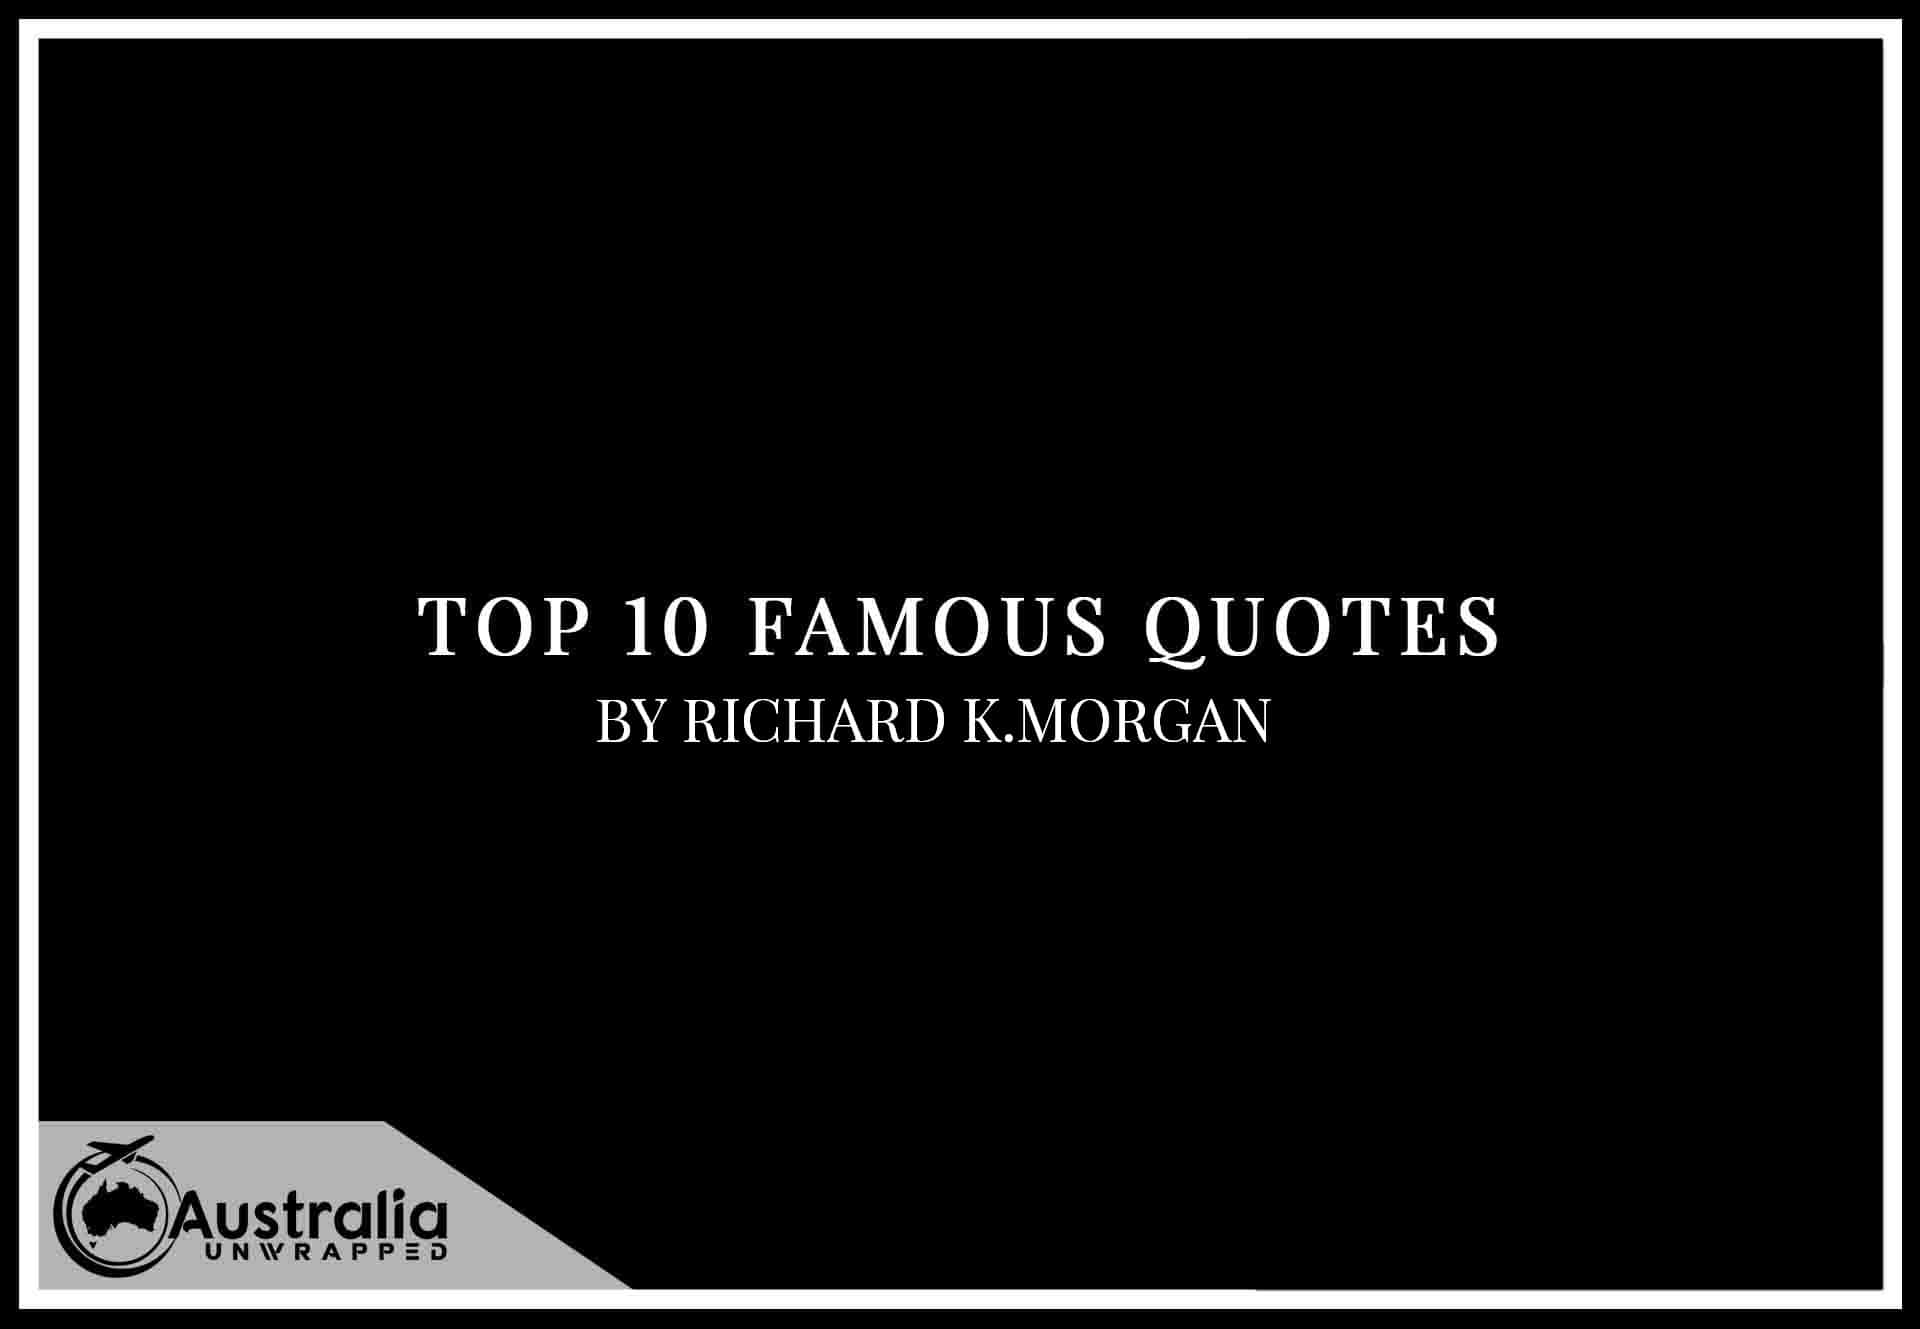 Top 10 Famous Quotes by Author Richard K. Morgan